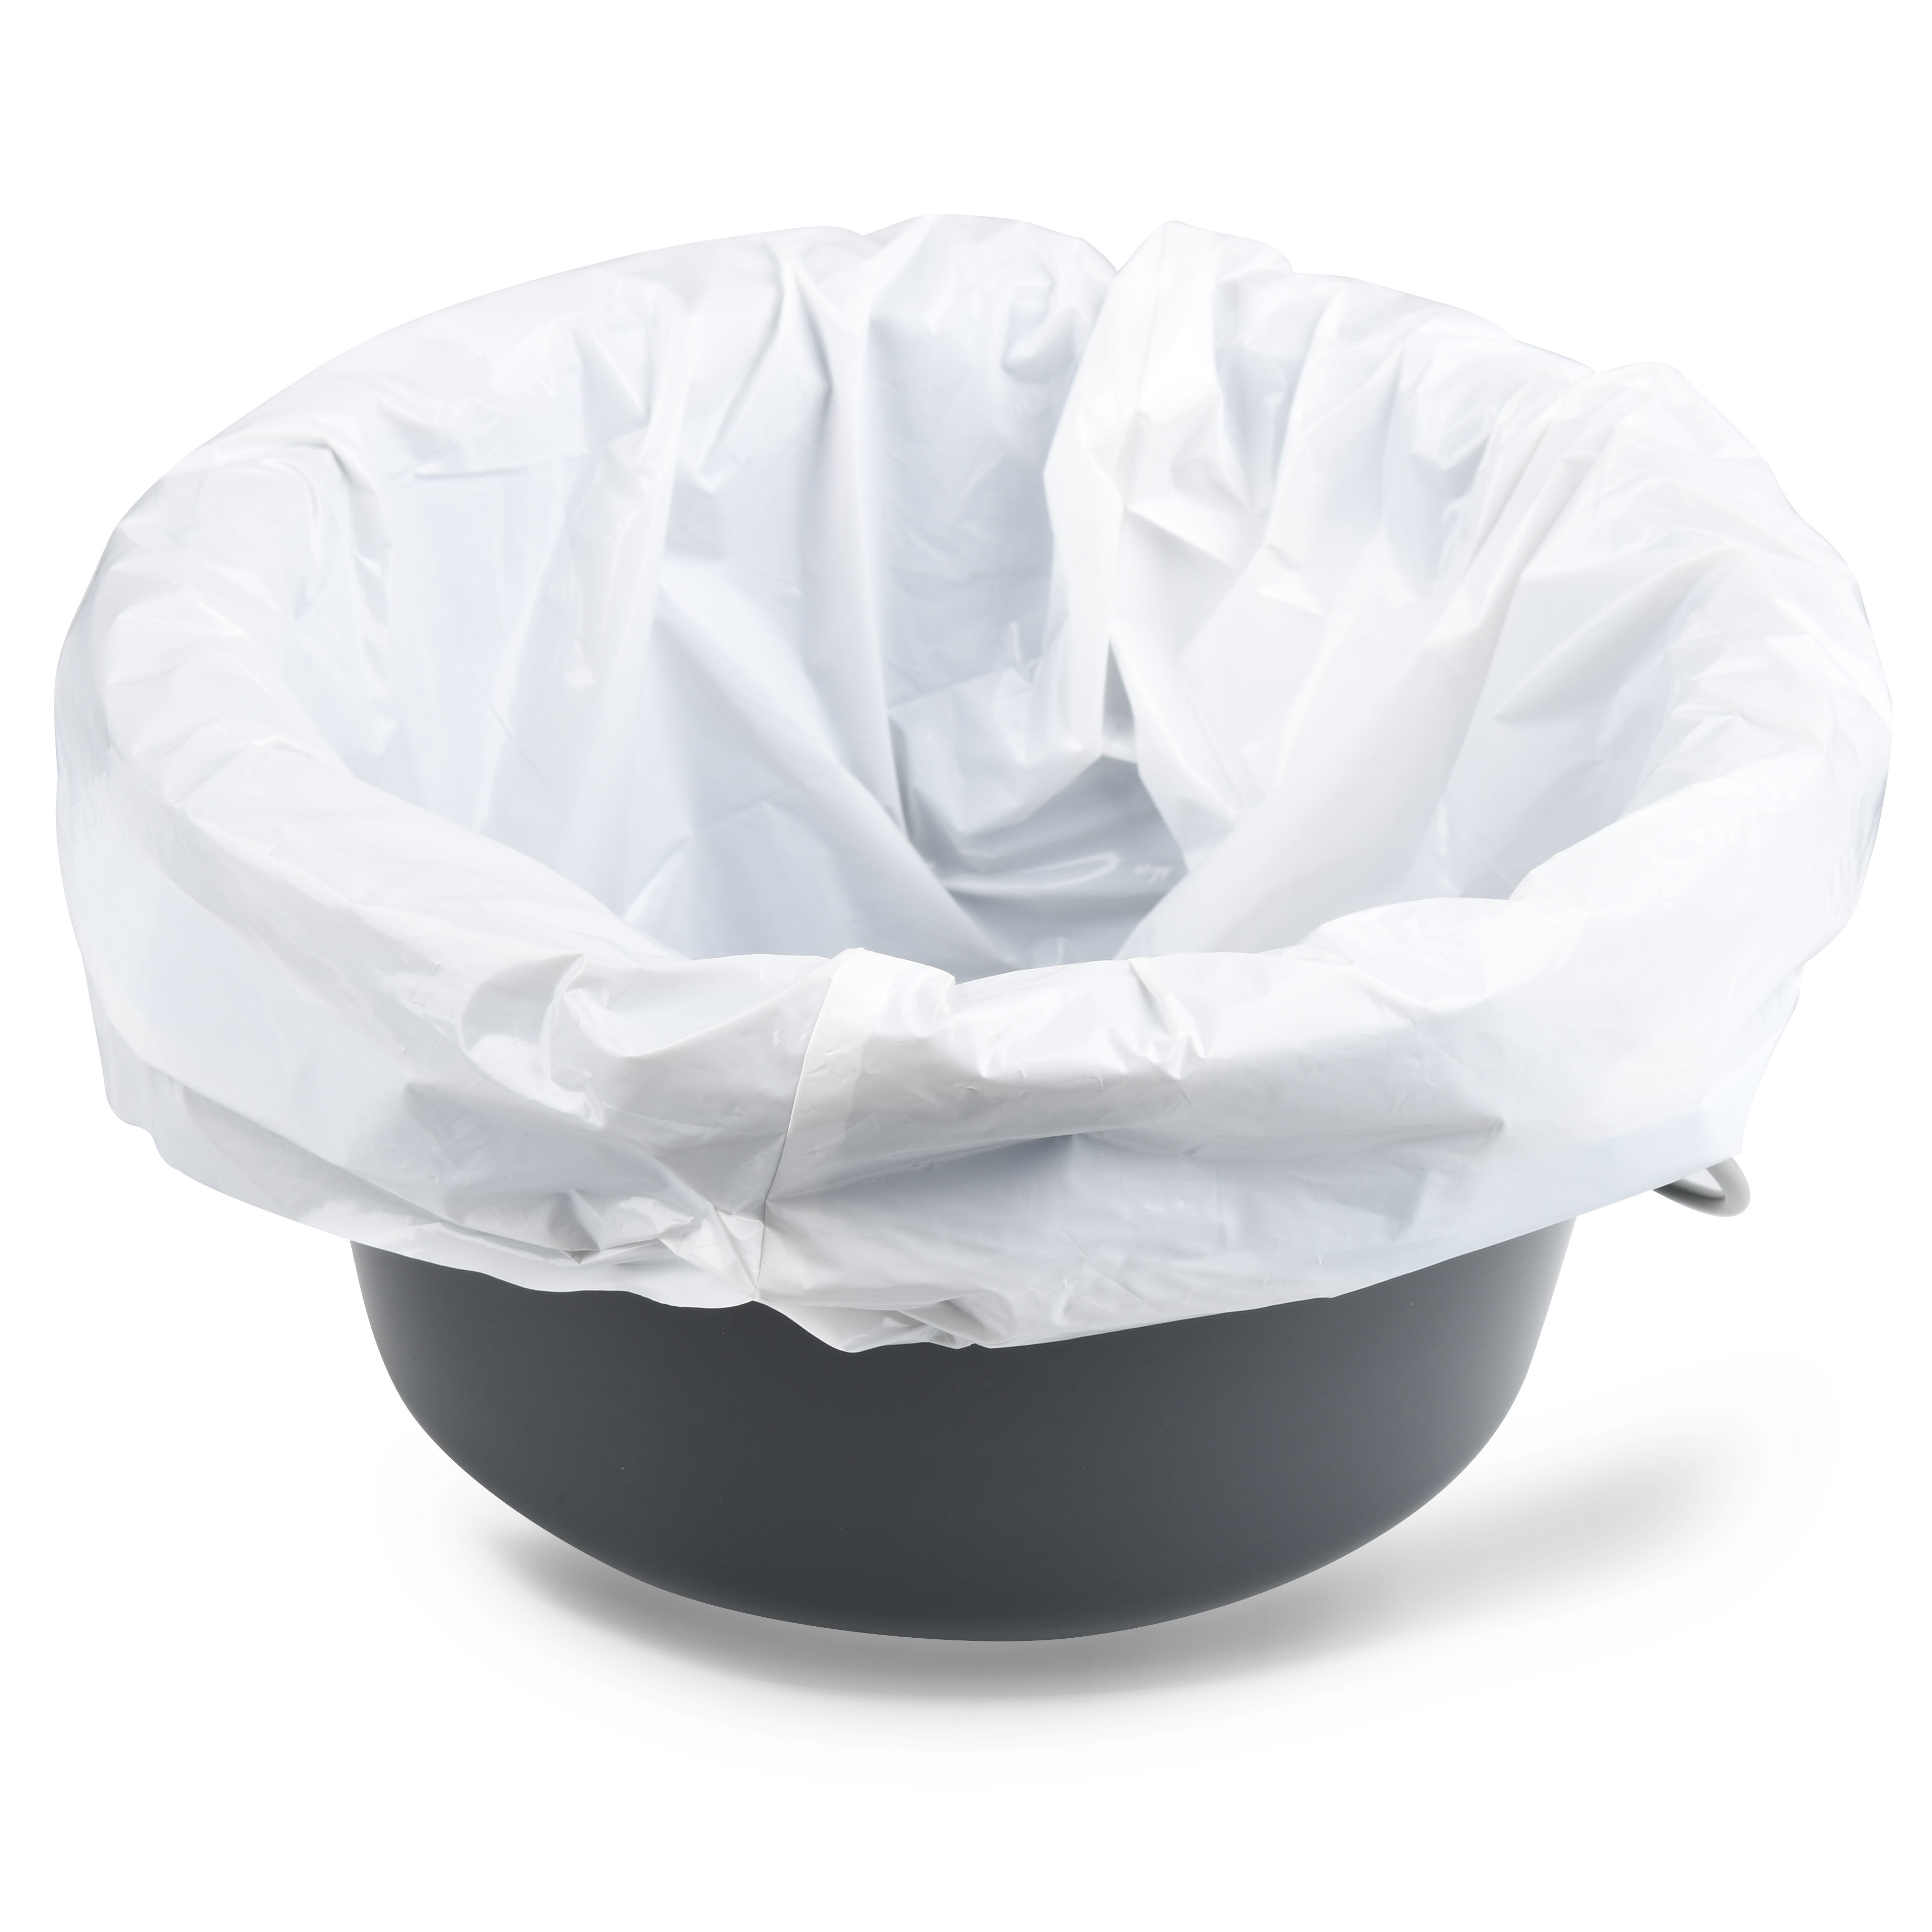 Equate Commode Liner Bags with Absorbent Pad